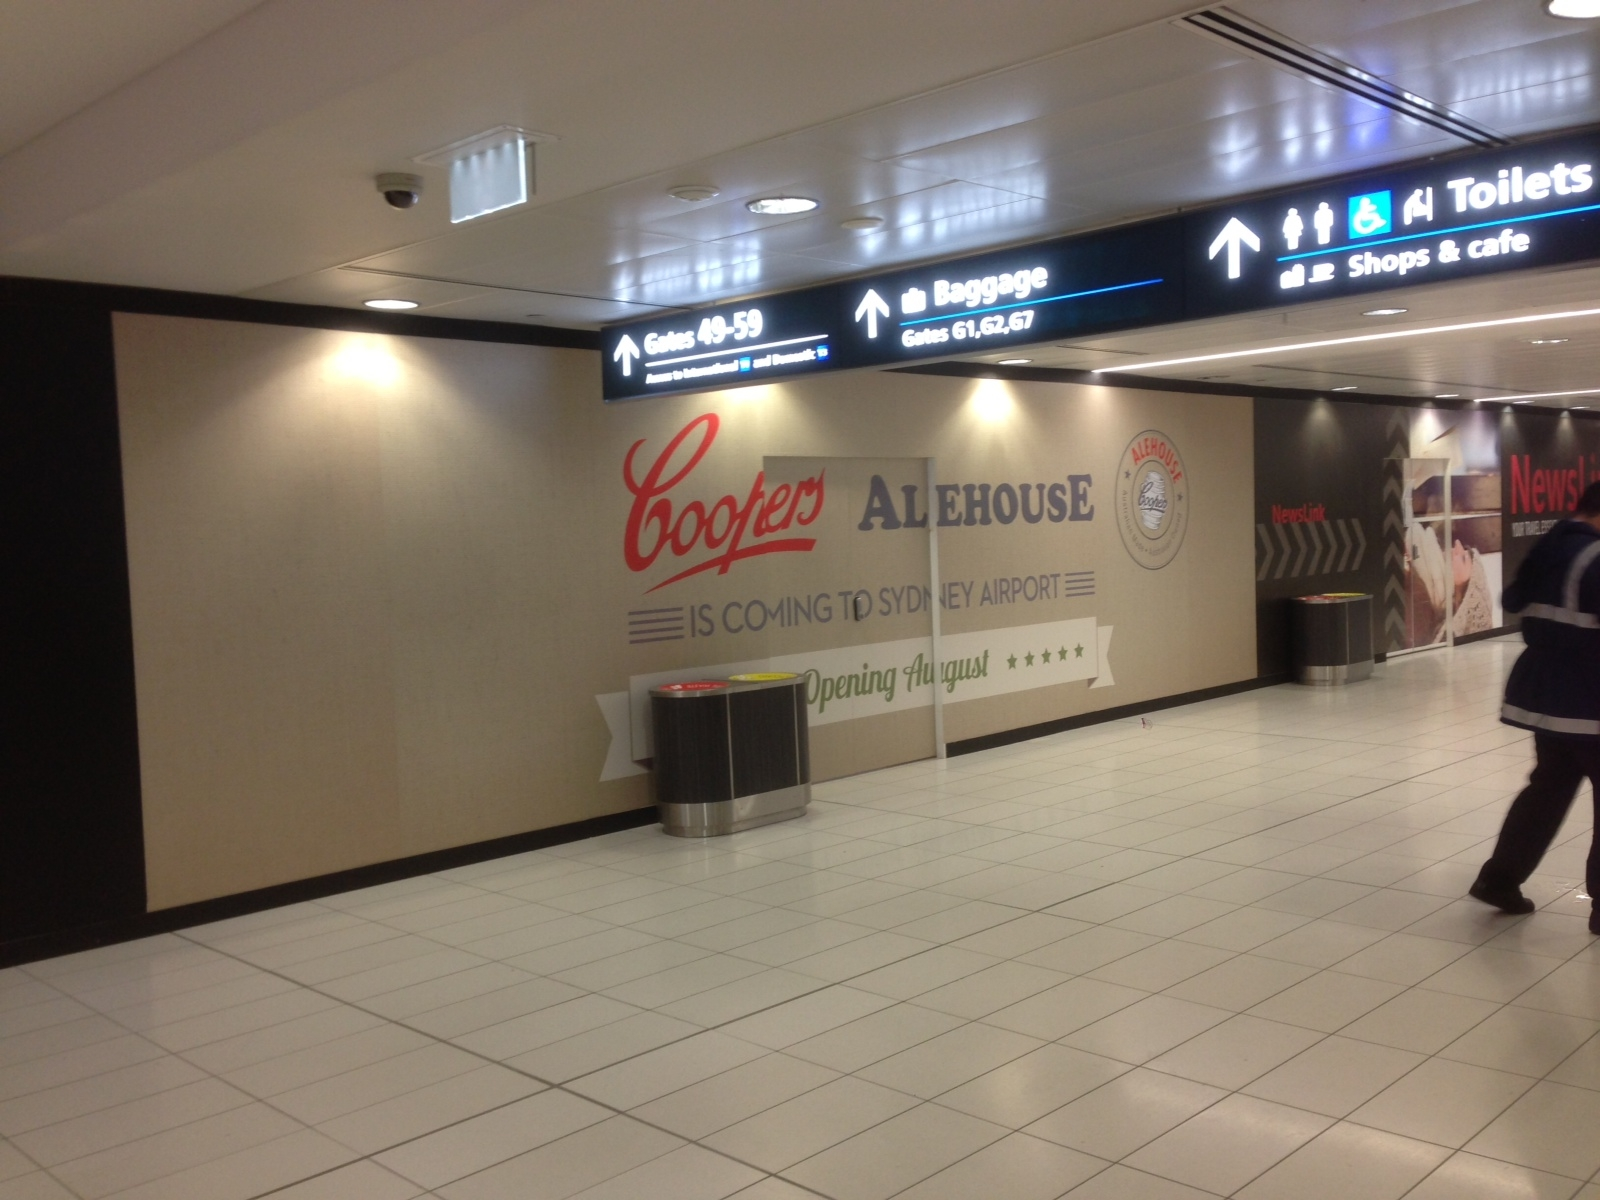 Sydney Airport Shops Sydney Airport Coopers Alehouse Msc Signs